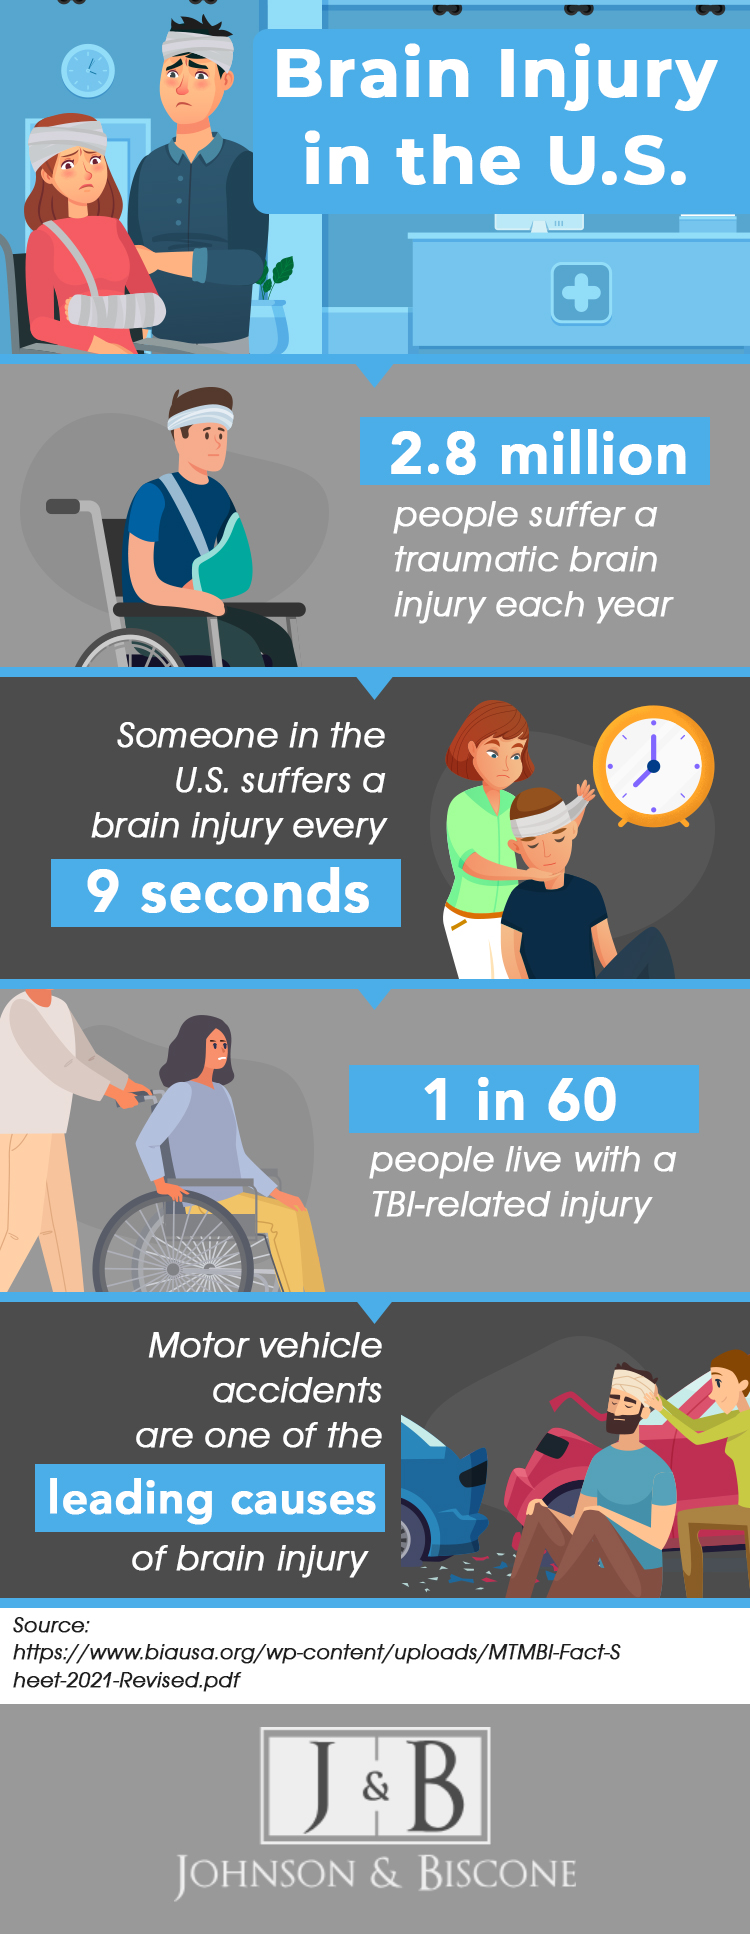 An infographic about brain injury statistics in the US.